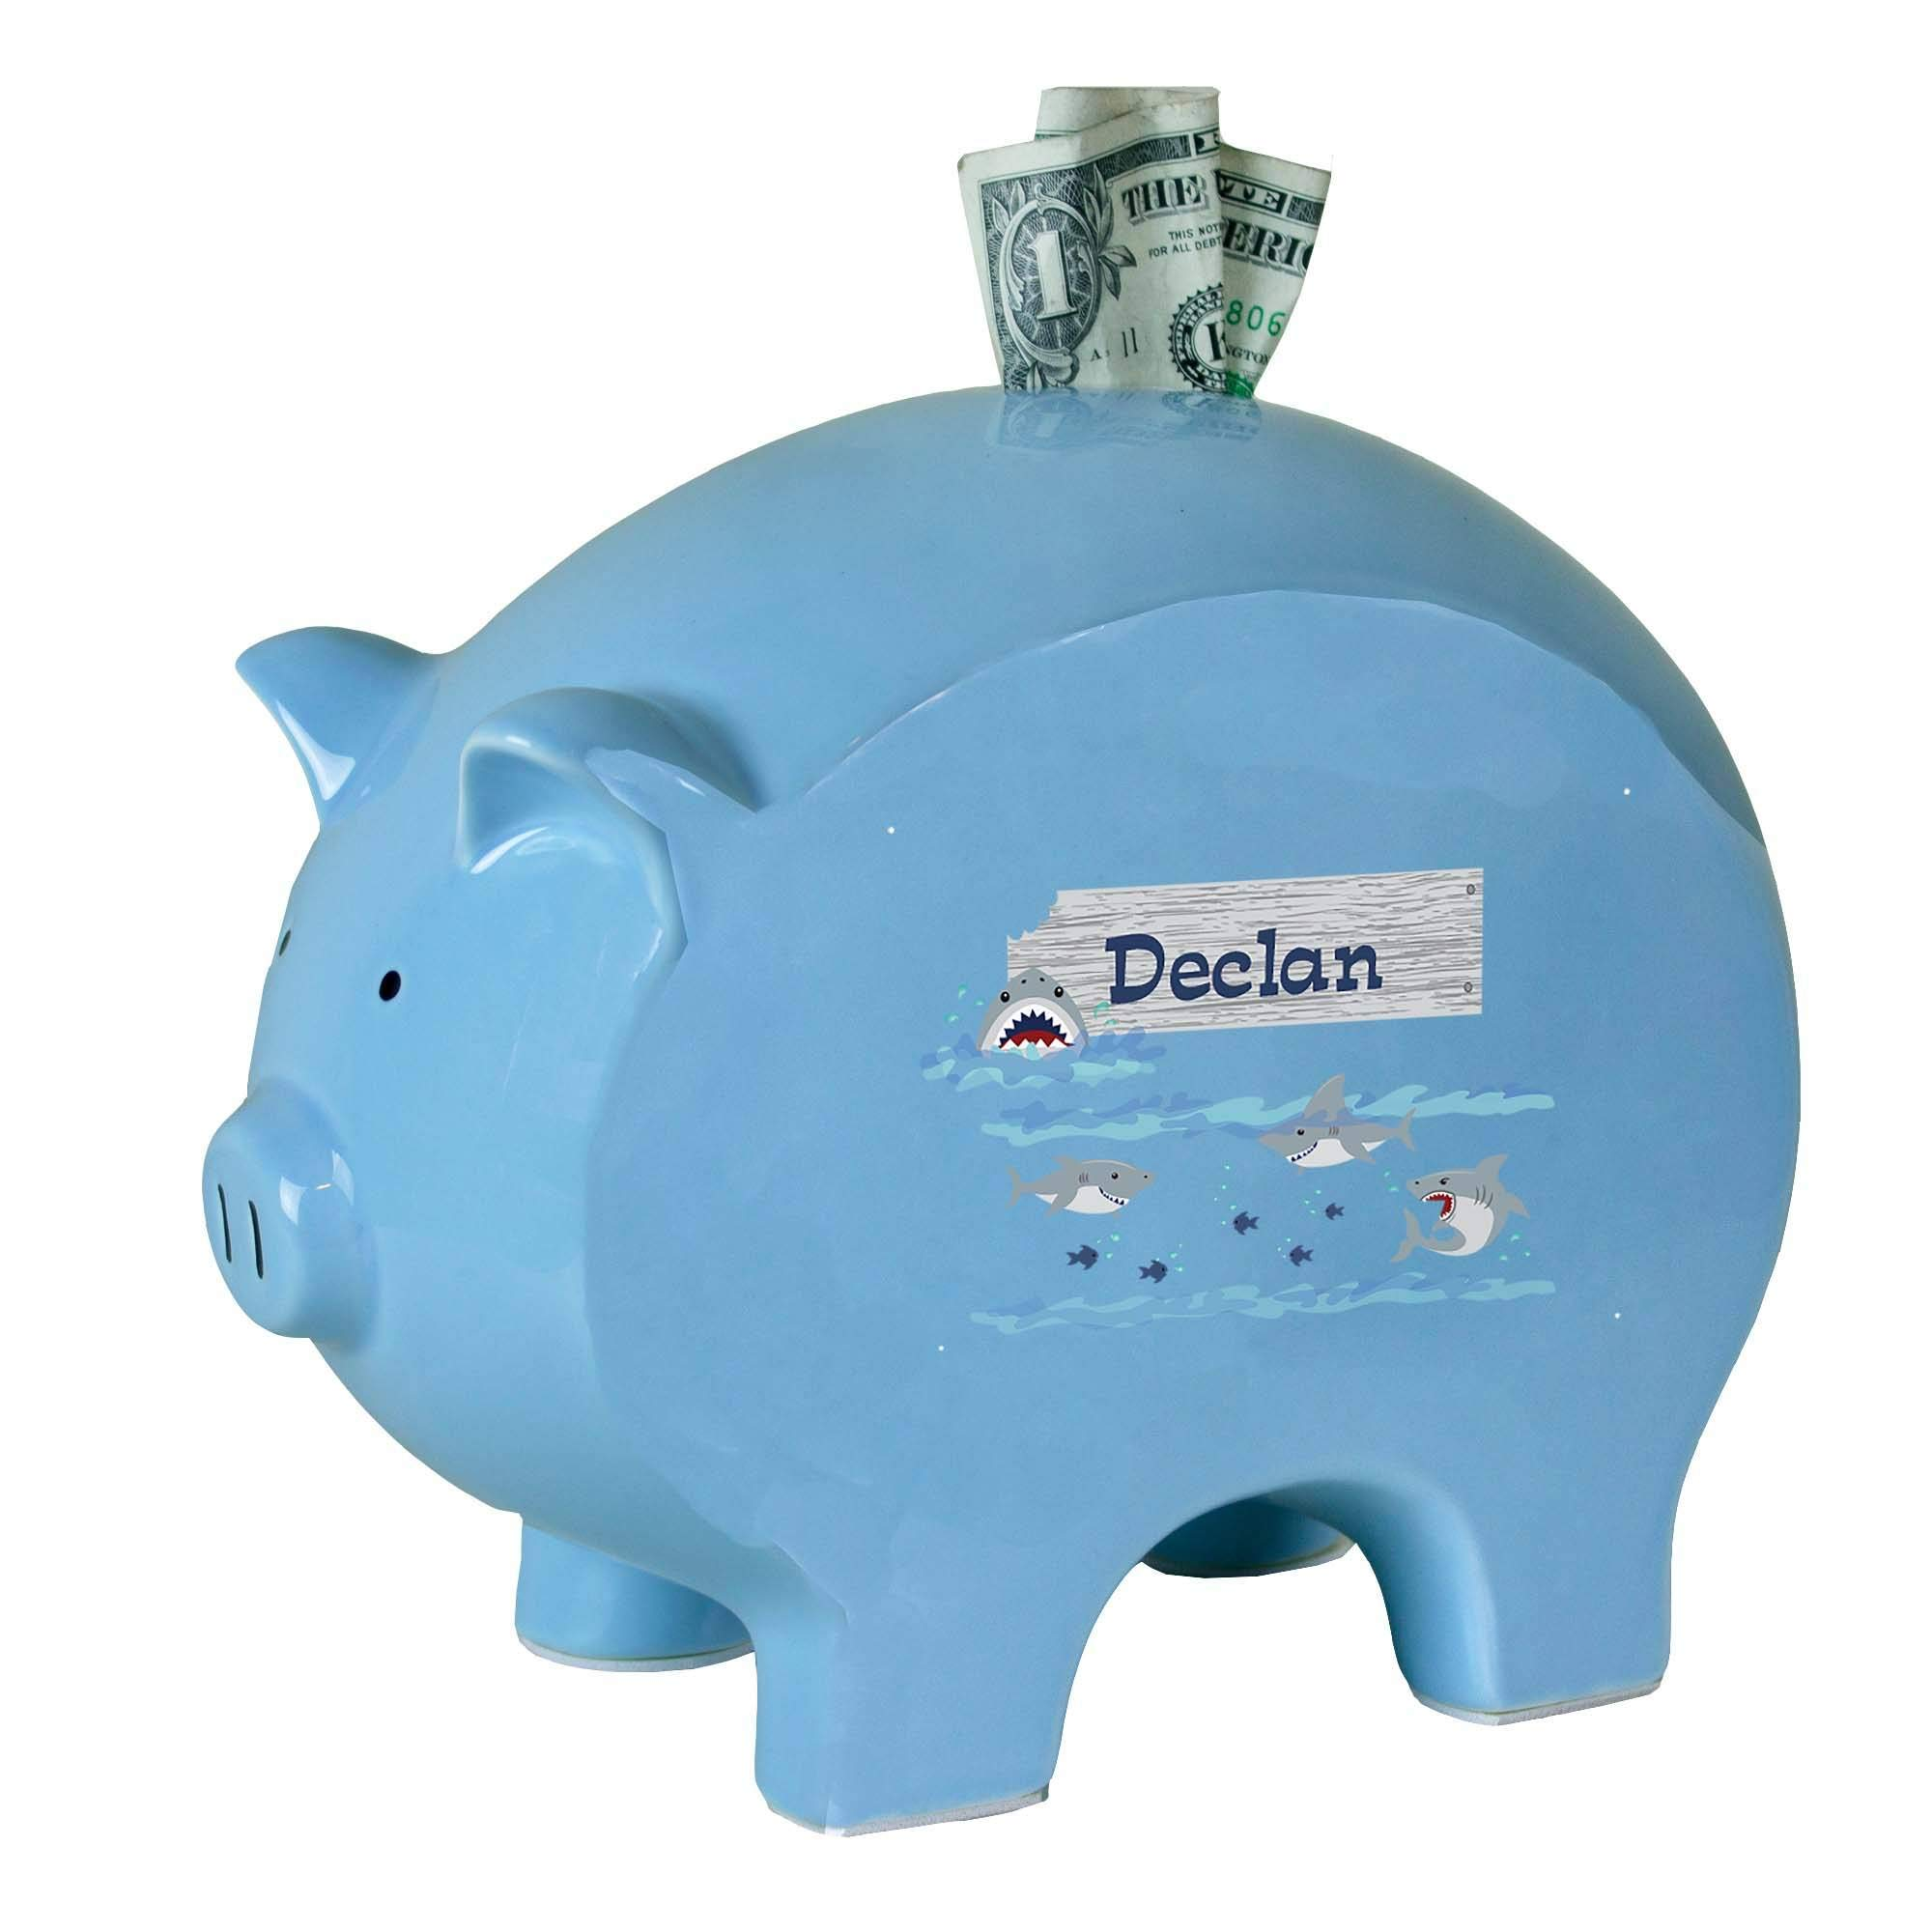 Personalized Blue Piggy Bank with Shark Tank Design